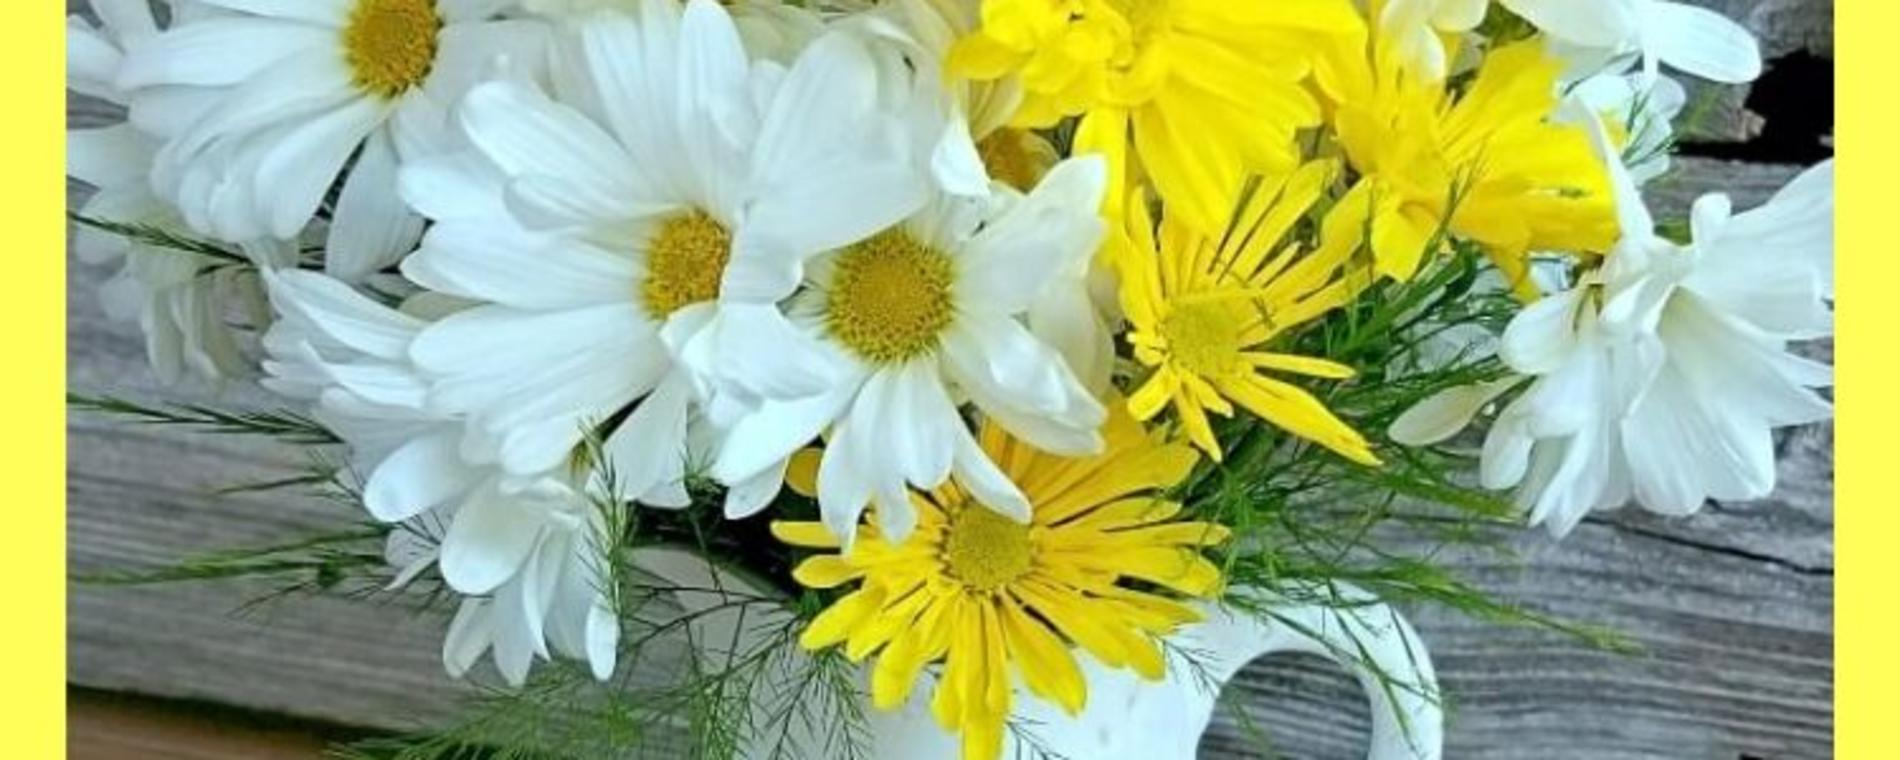 Pretty Bouquet of Daisies